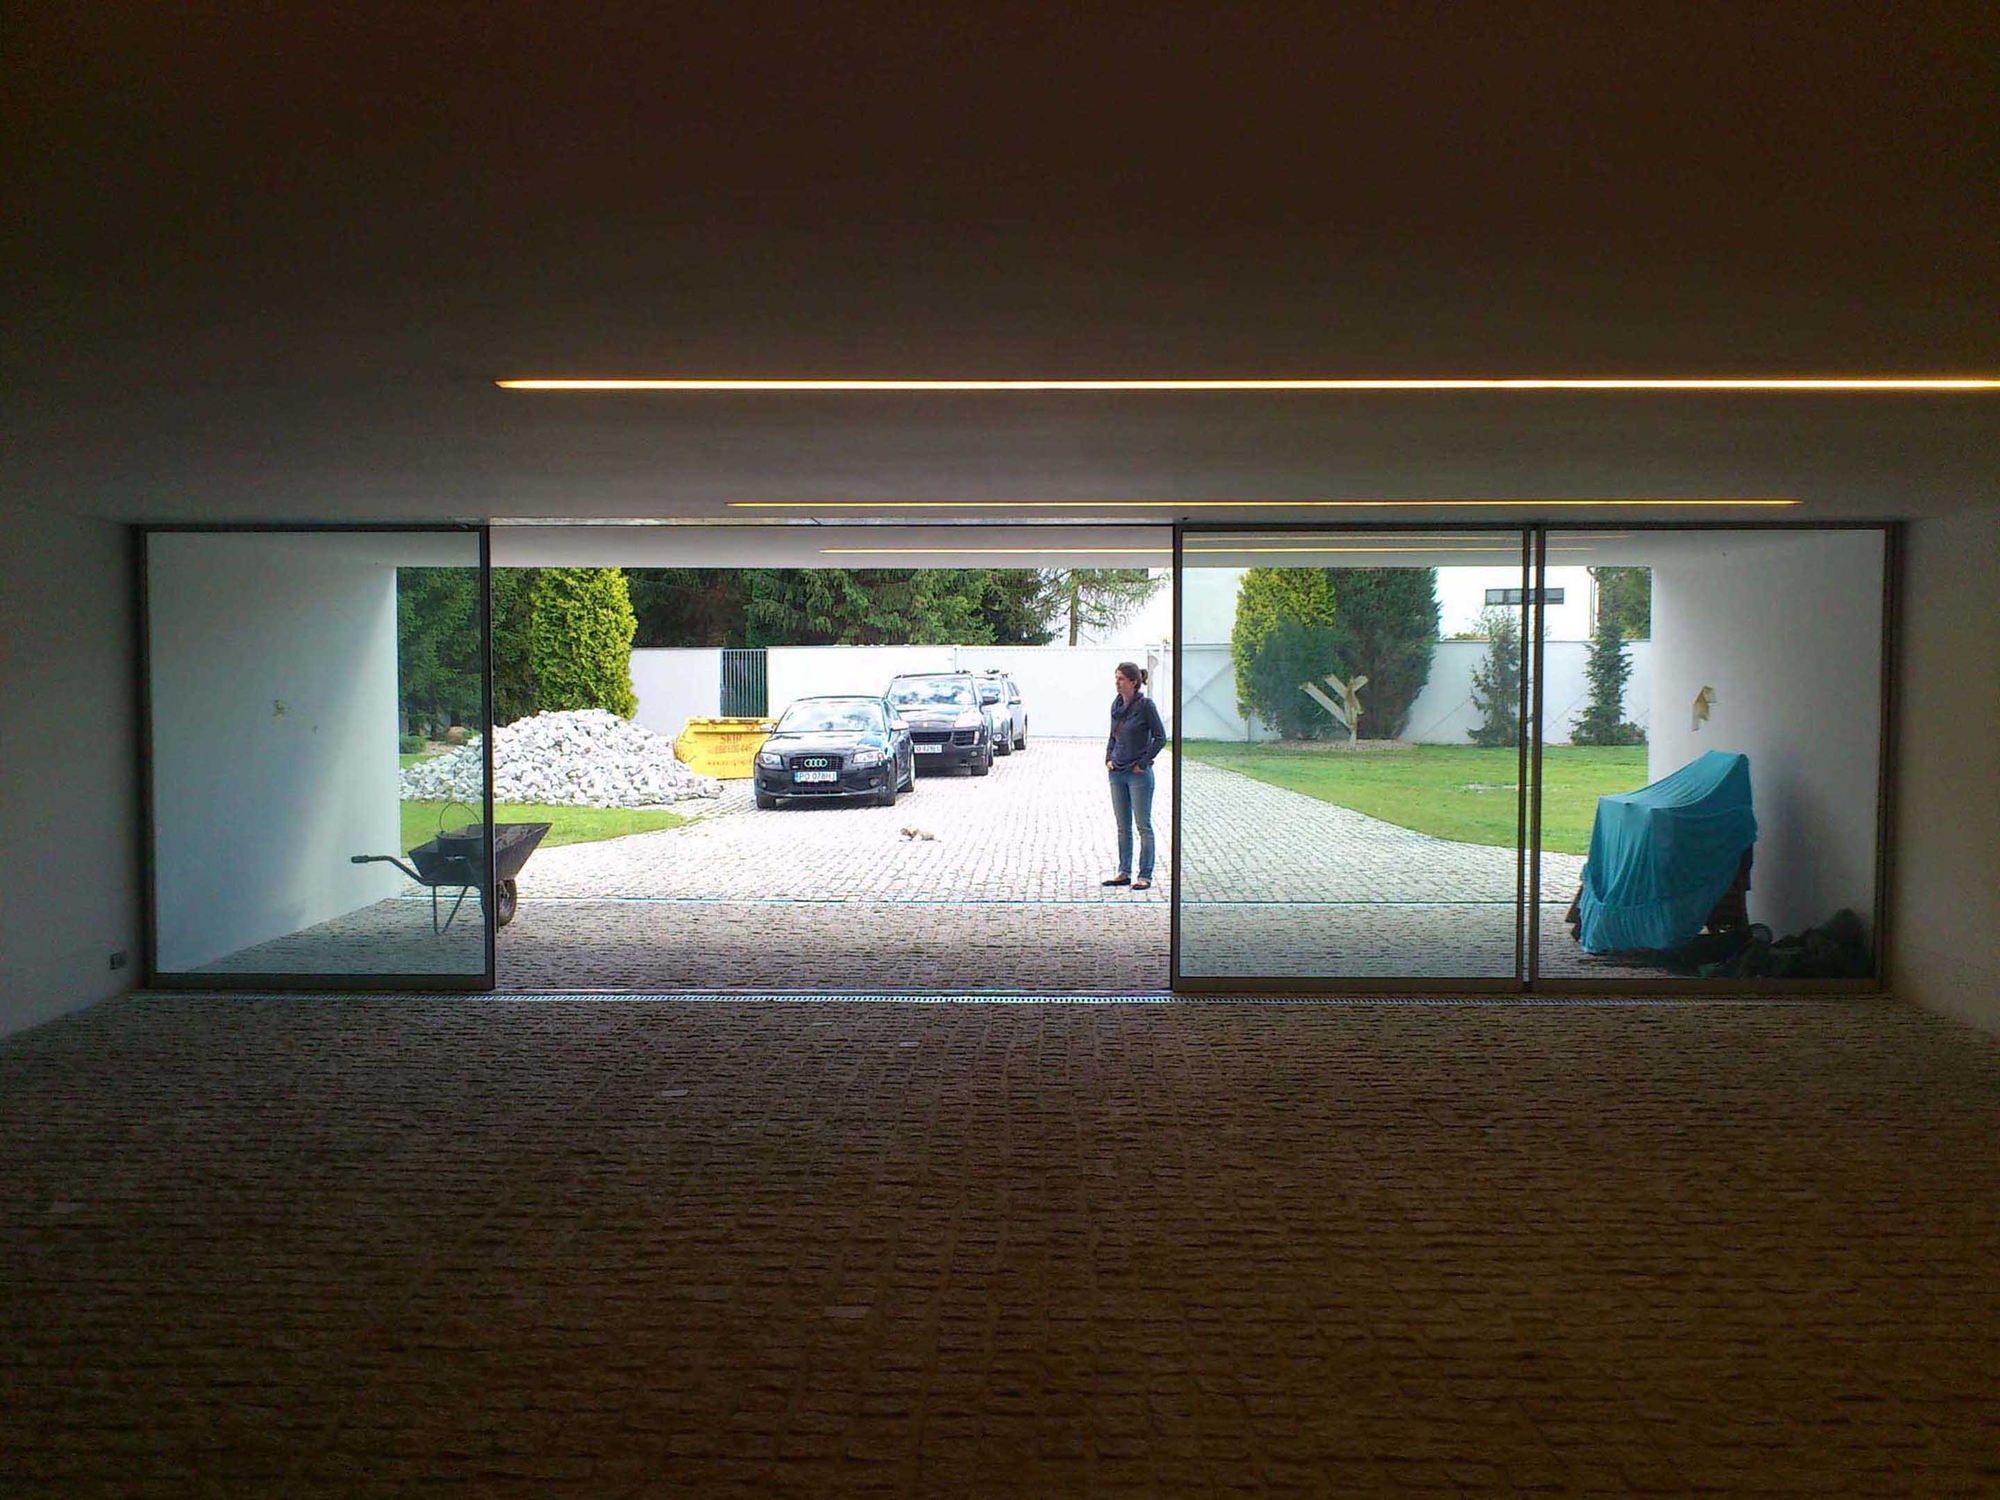 Gallery of Auto-Family House / KWK PROMES - 2